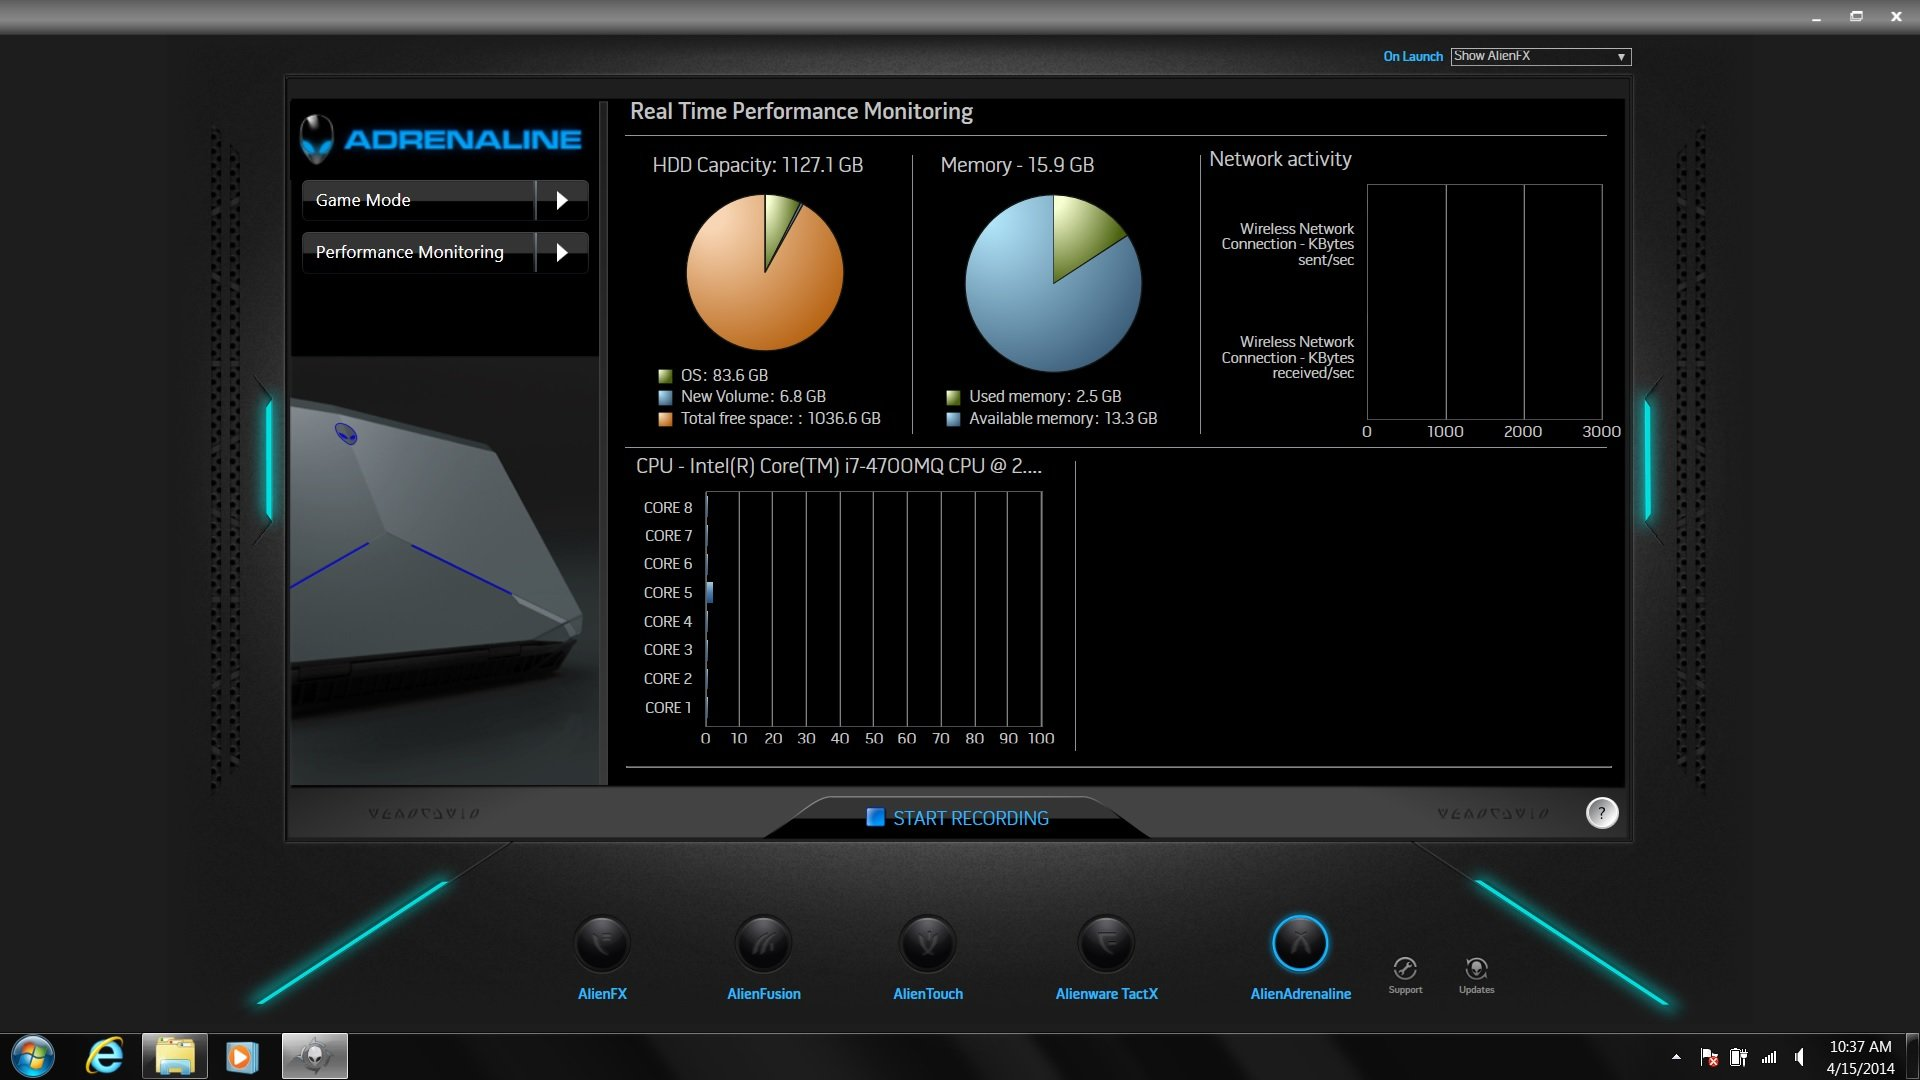 You can also monitor the Alienware 17's performance in AlienAdrenaline.